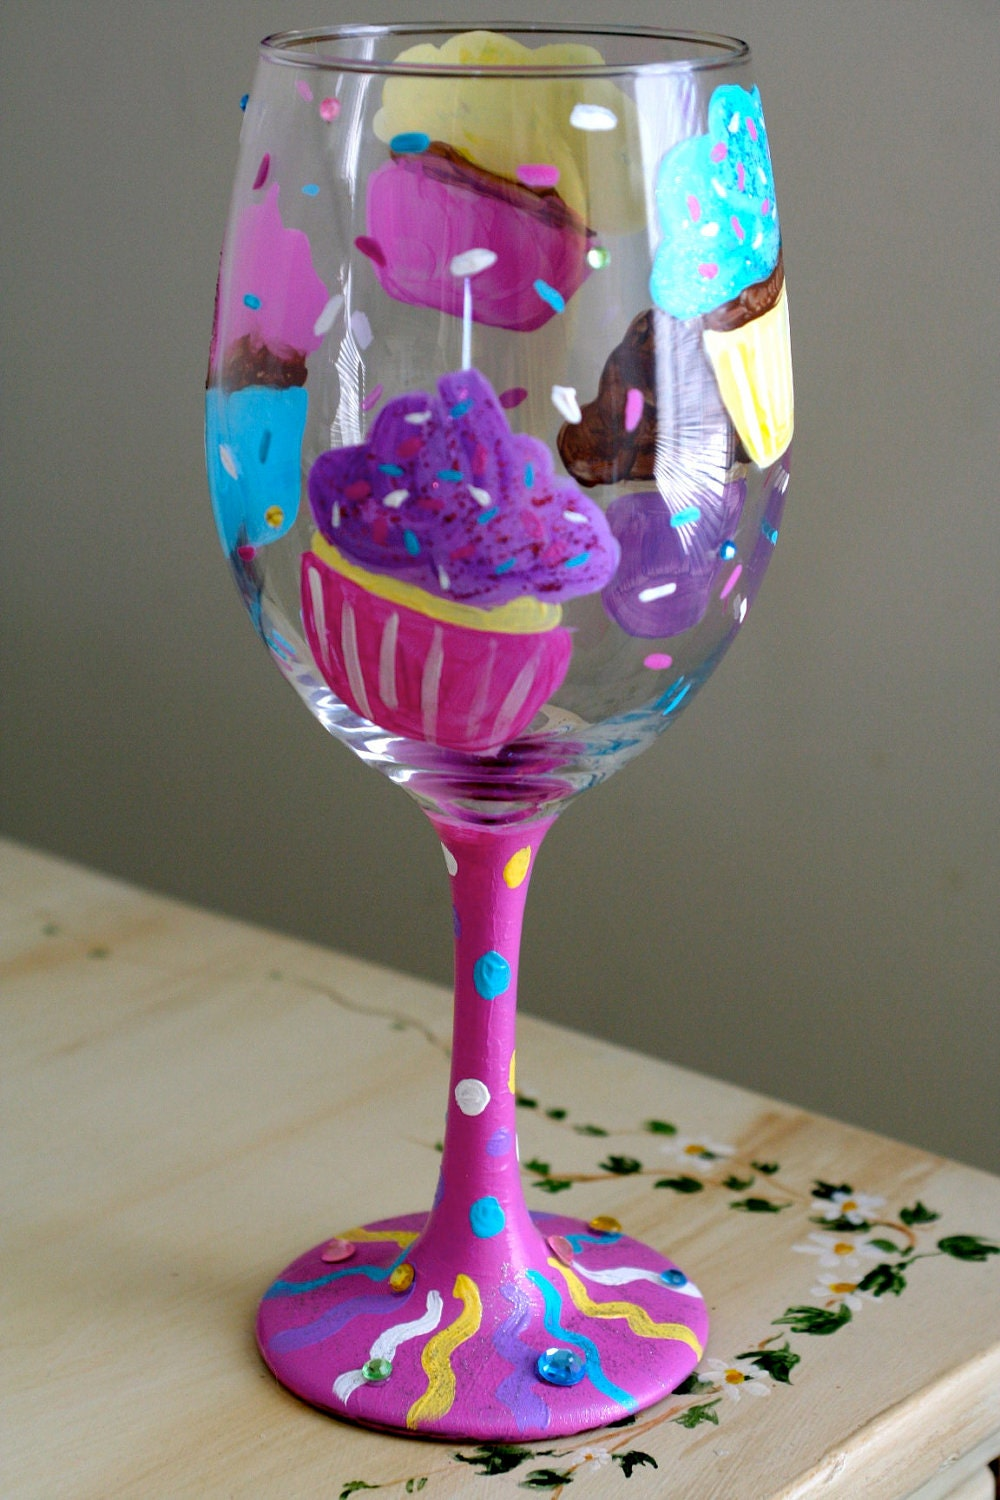 Hand painted cupcake wine glass Images of painted wine glasses